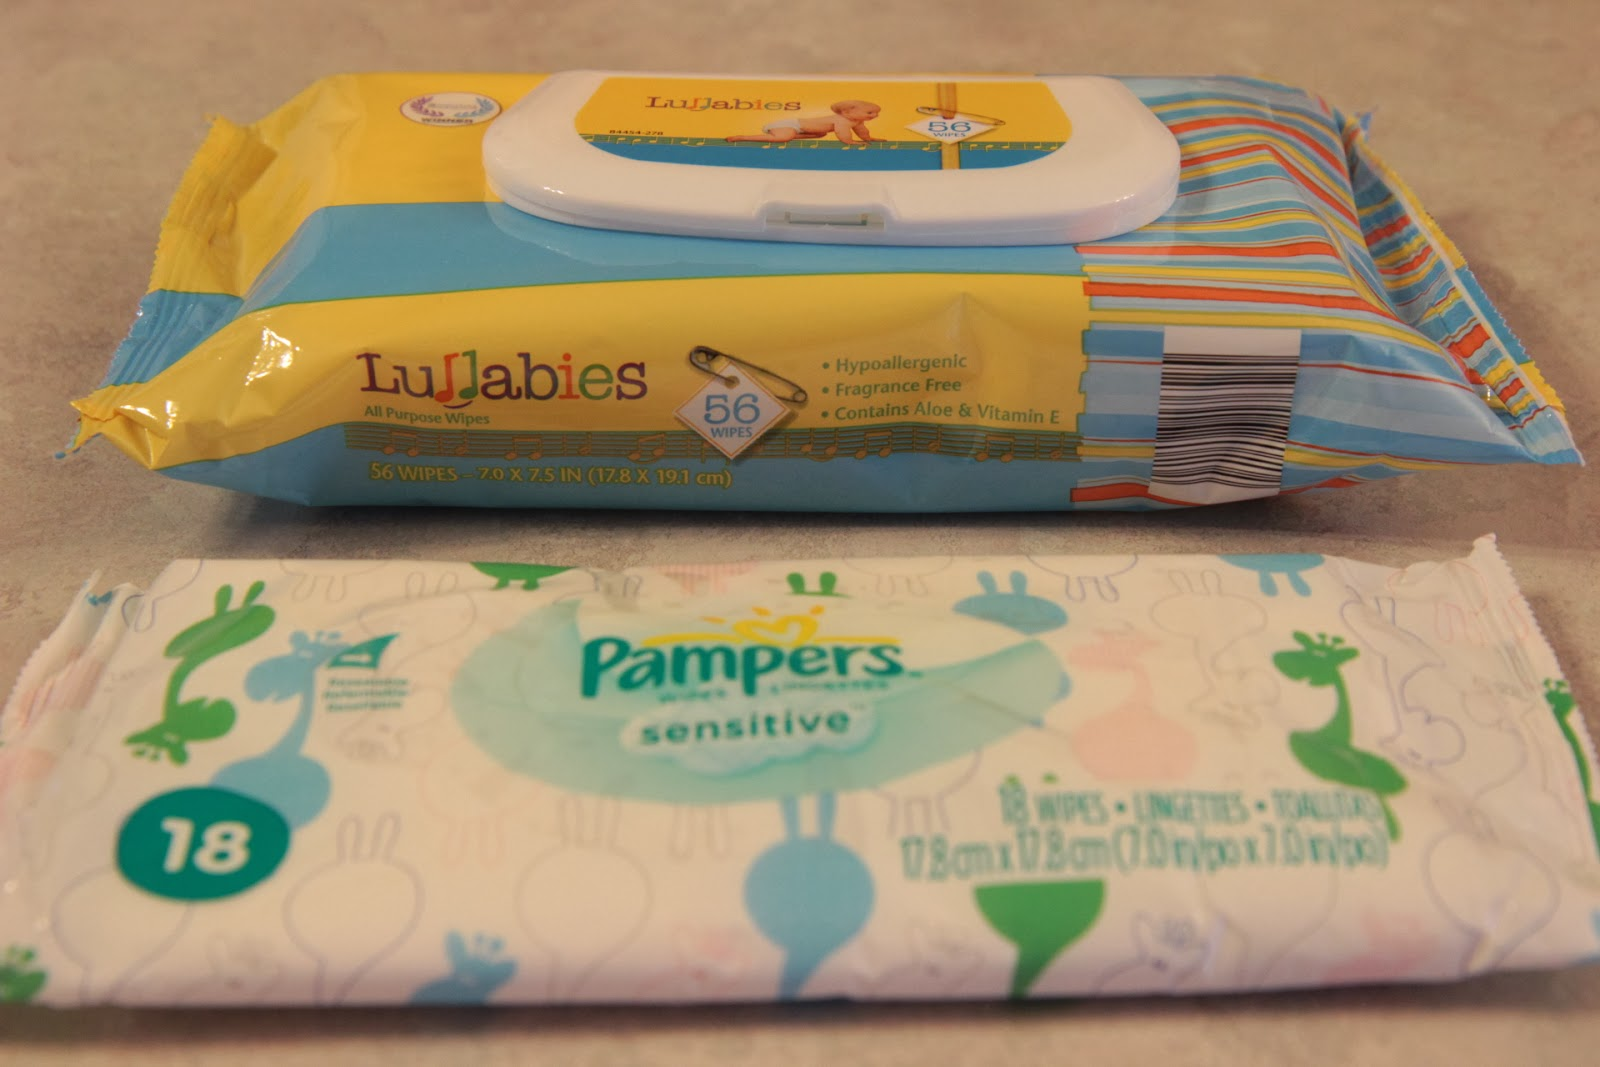 Aldi Lullabies vs Pampers Sensitive